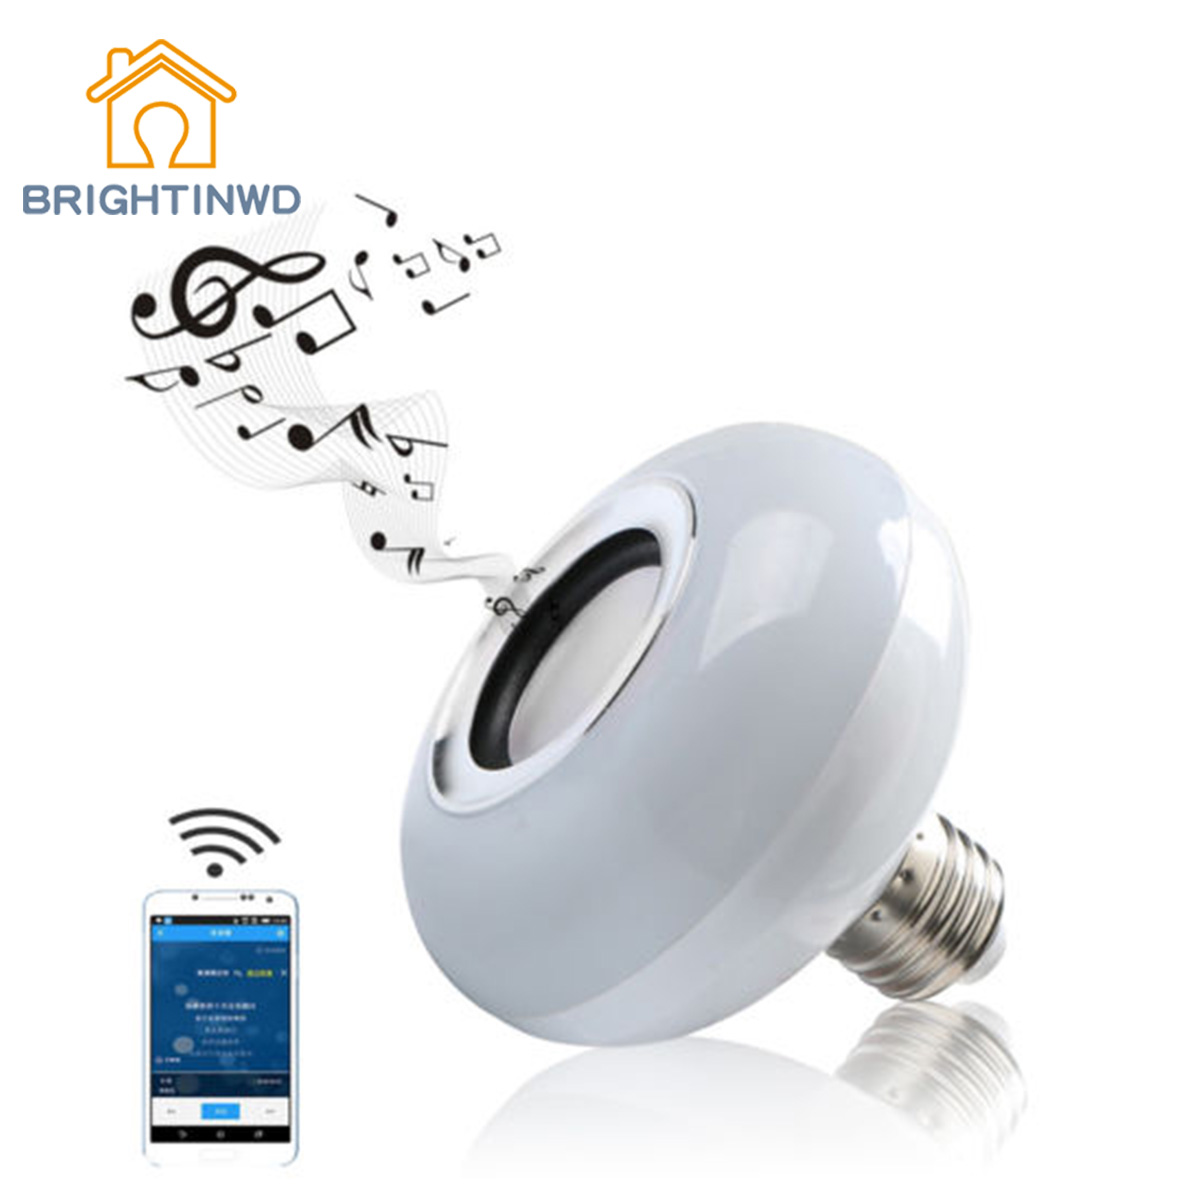 BRIGHTINWD 12W E27 LED RGB Wireless Bluetooth Speaker Bulb Light Music Play Lamp w/ Remote